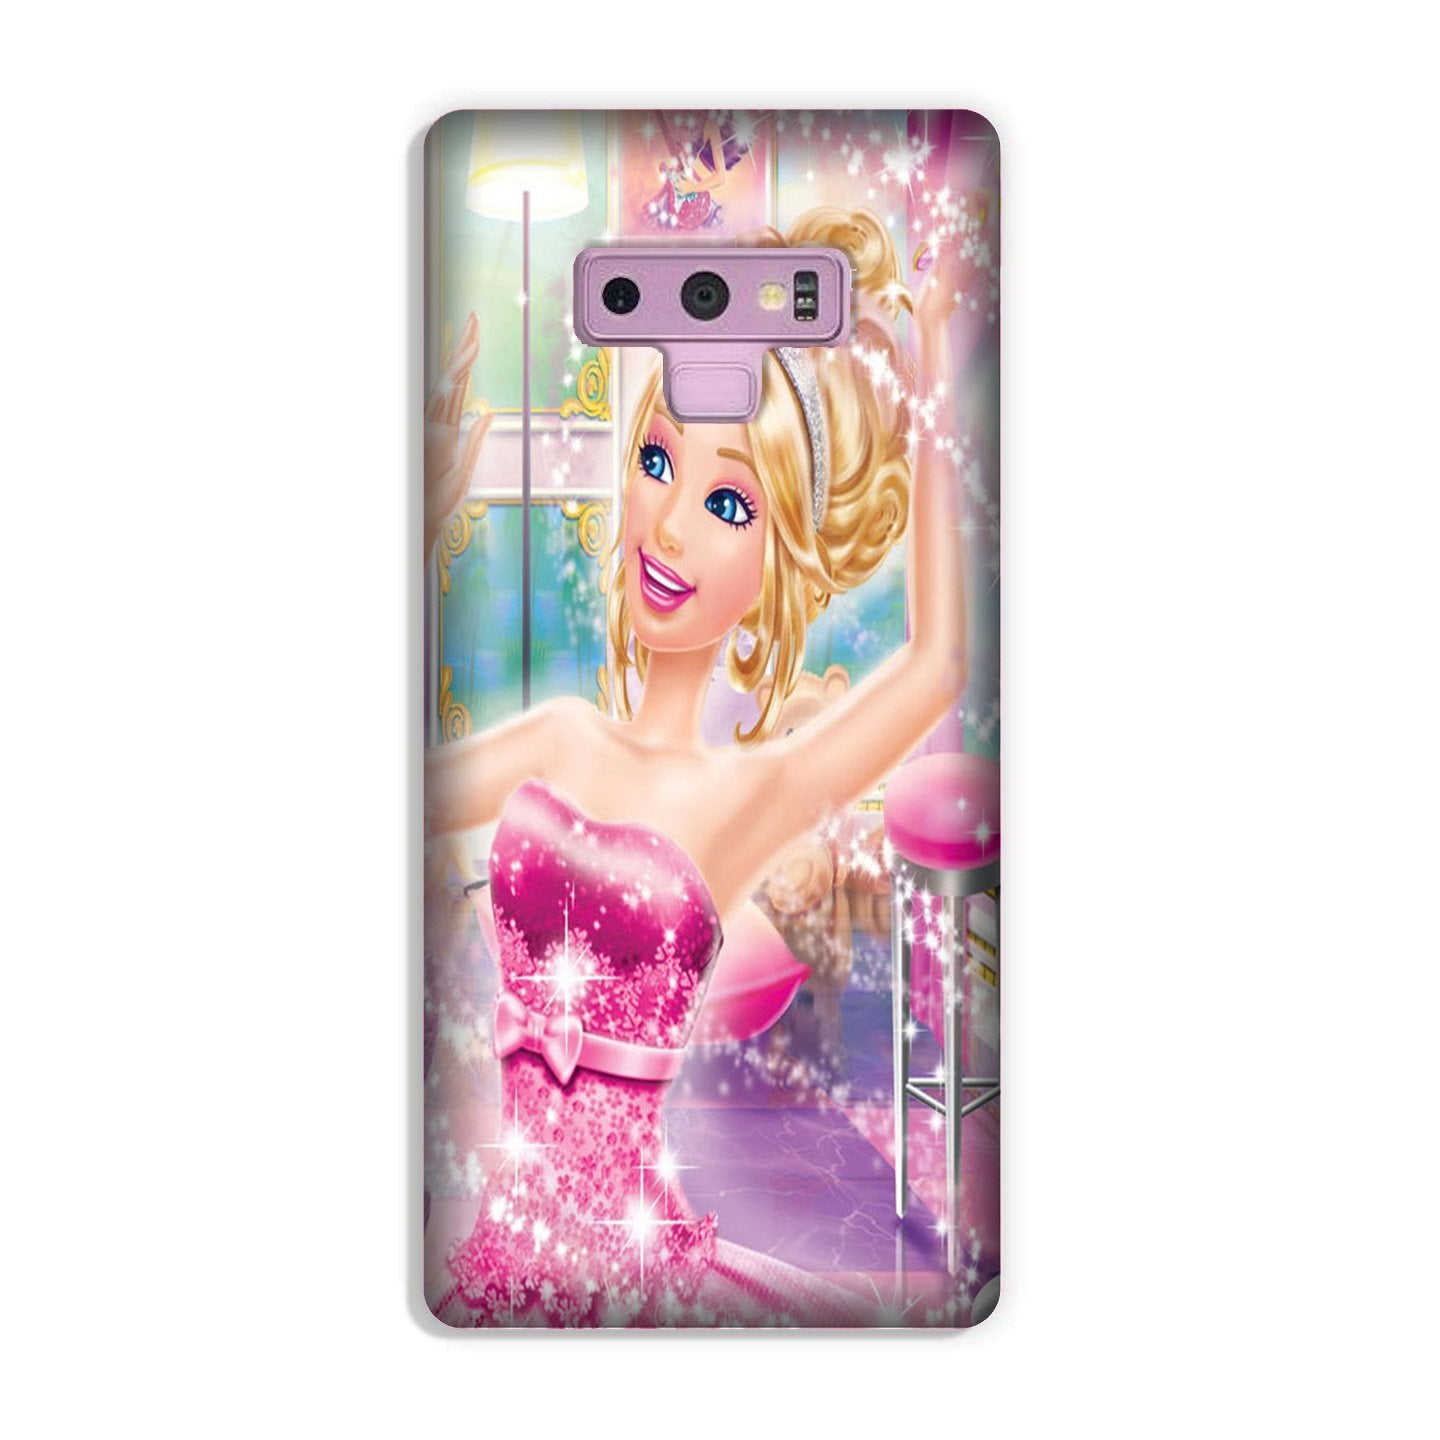 Princesses Case for Galaxy Note 9